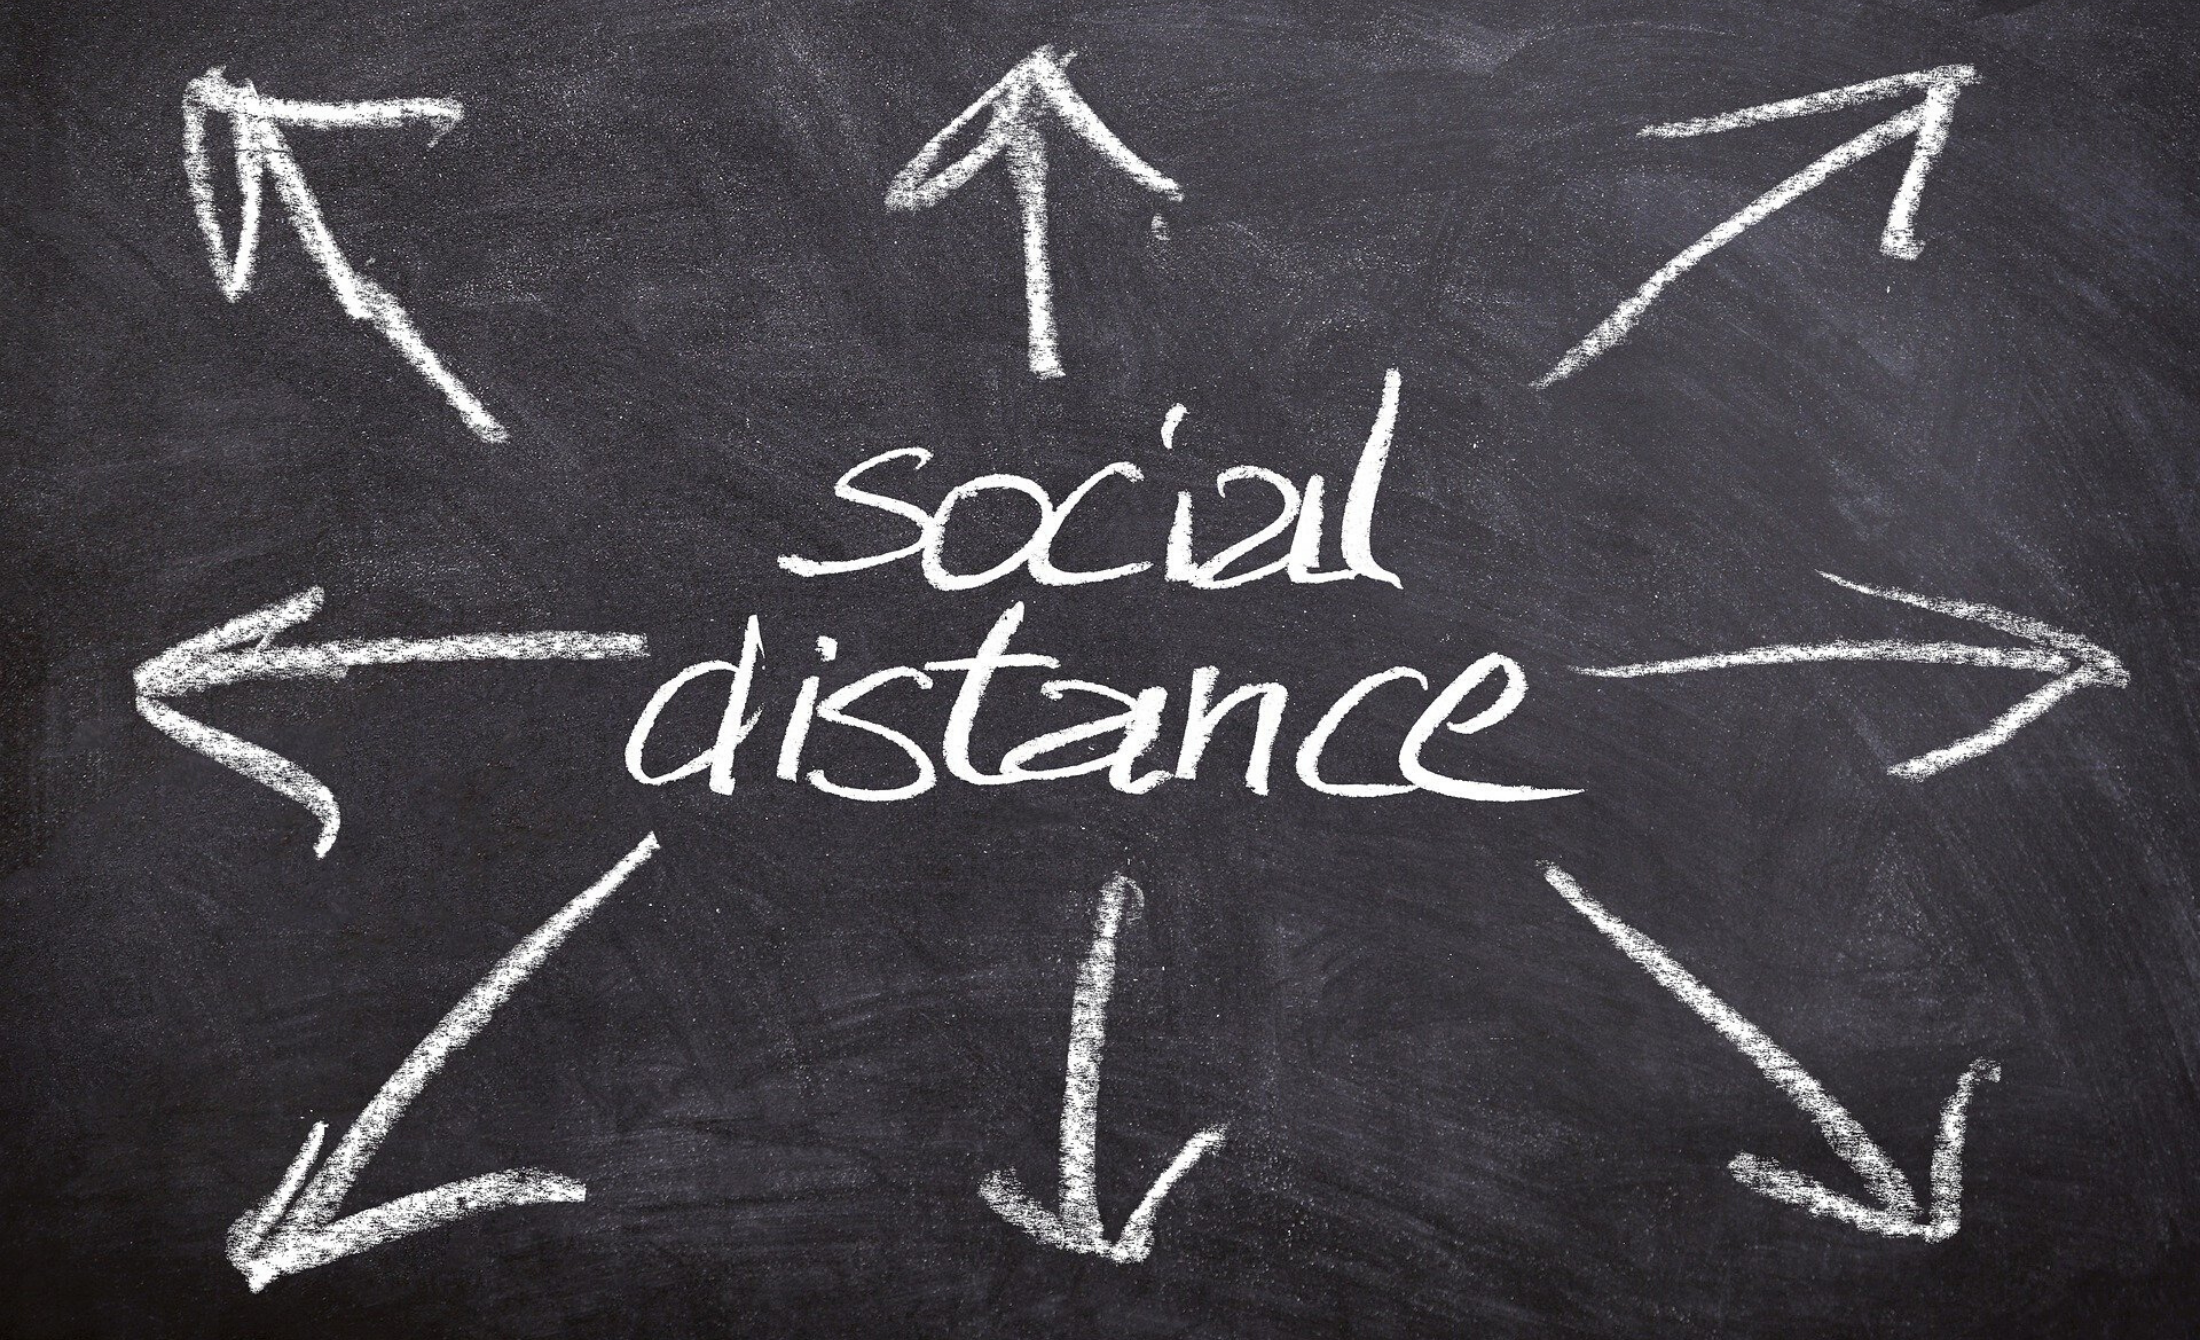 6 VALUABLE LESSONS TO LEARN FROM SOCIAL DISTANCING